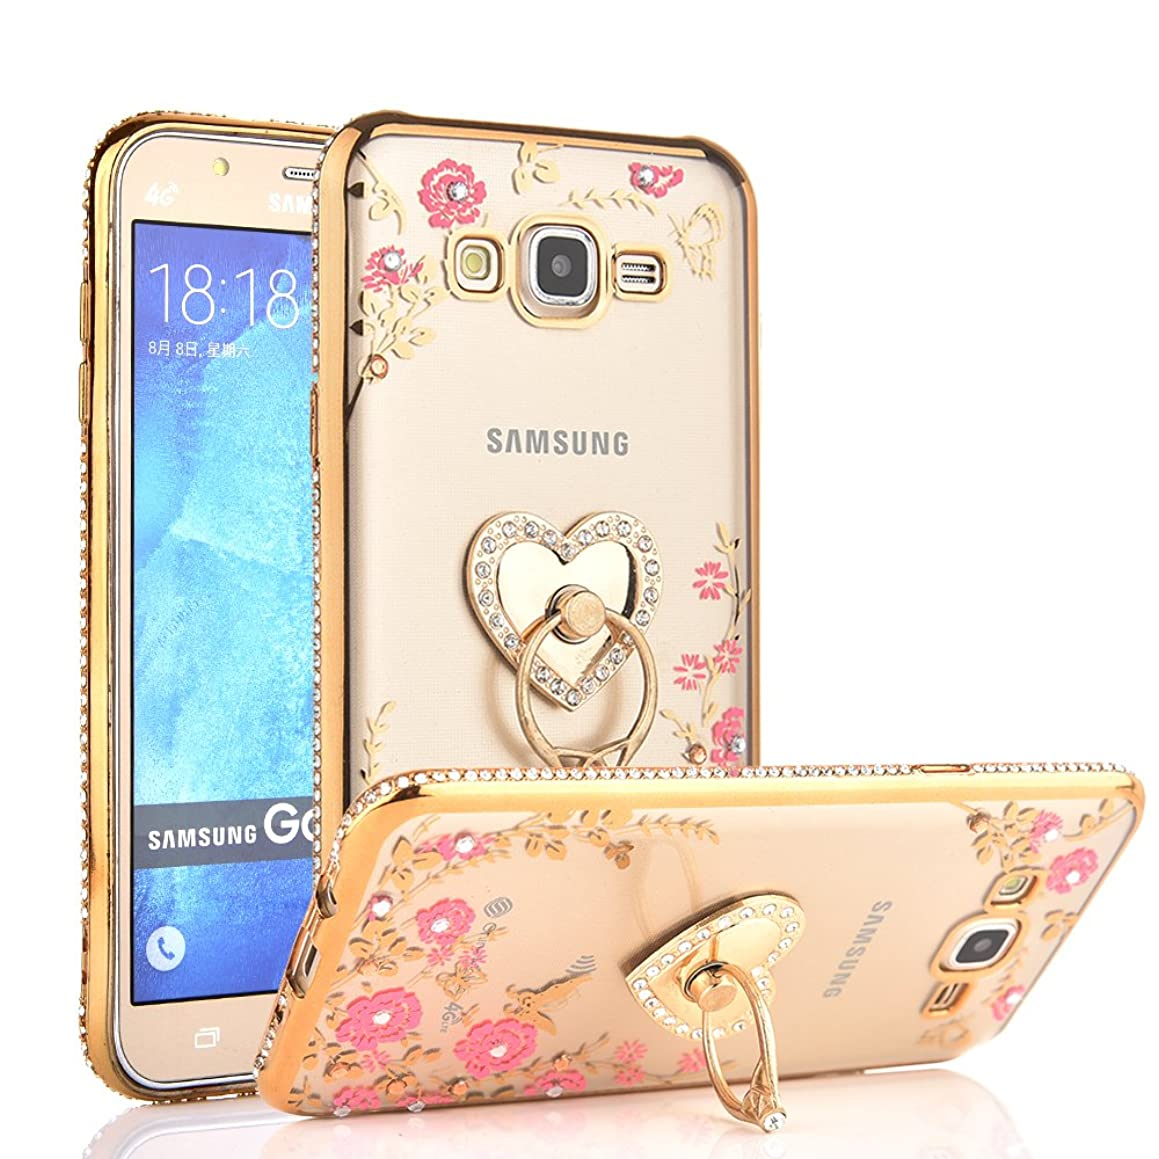 CaseHaven Galaxy J7 Case, Glitter Crystal Heart Floral Series - Slim Luxury Bling Rhinestone Clear TPU Case with Ring Stand for Samsung Galaxy J7 J700 (2015) - Gold